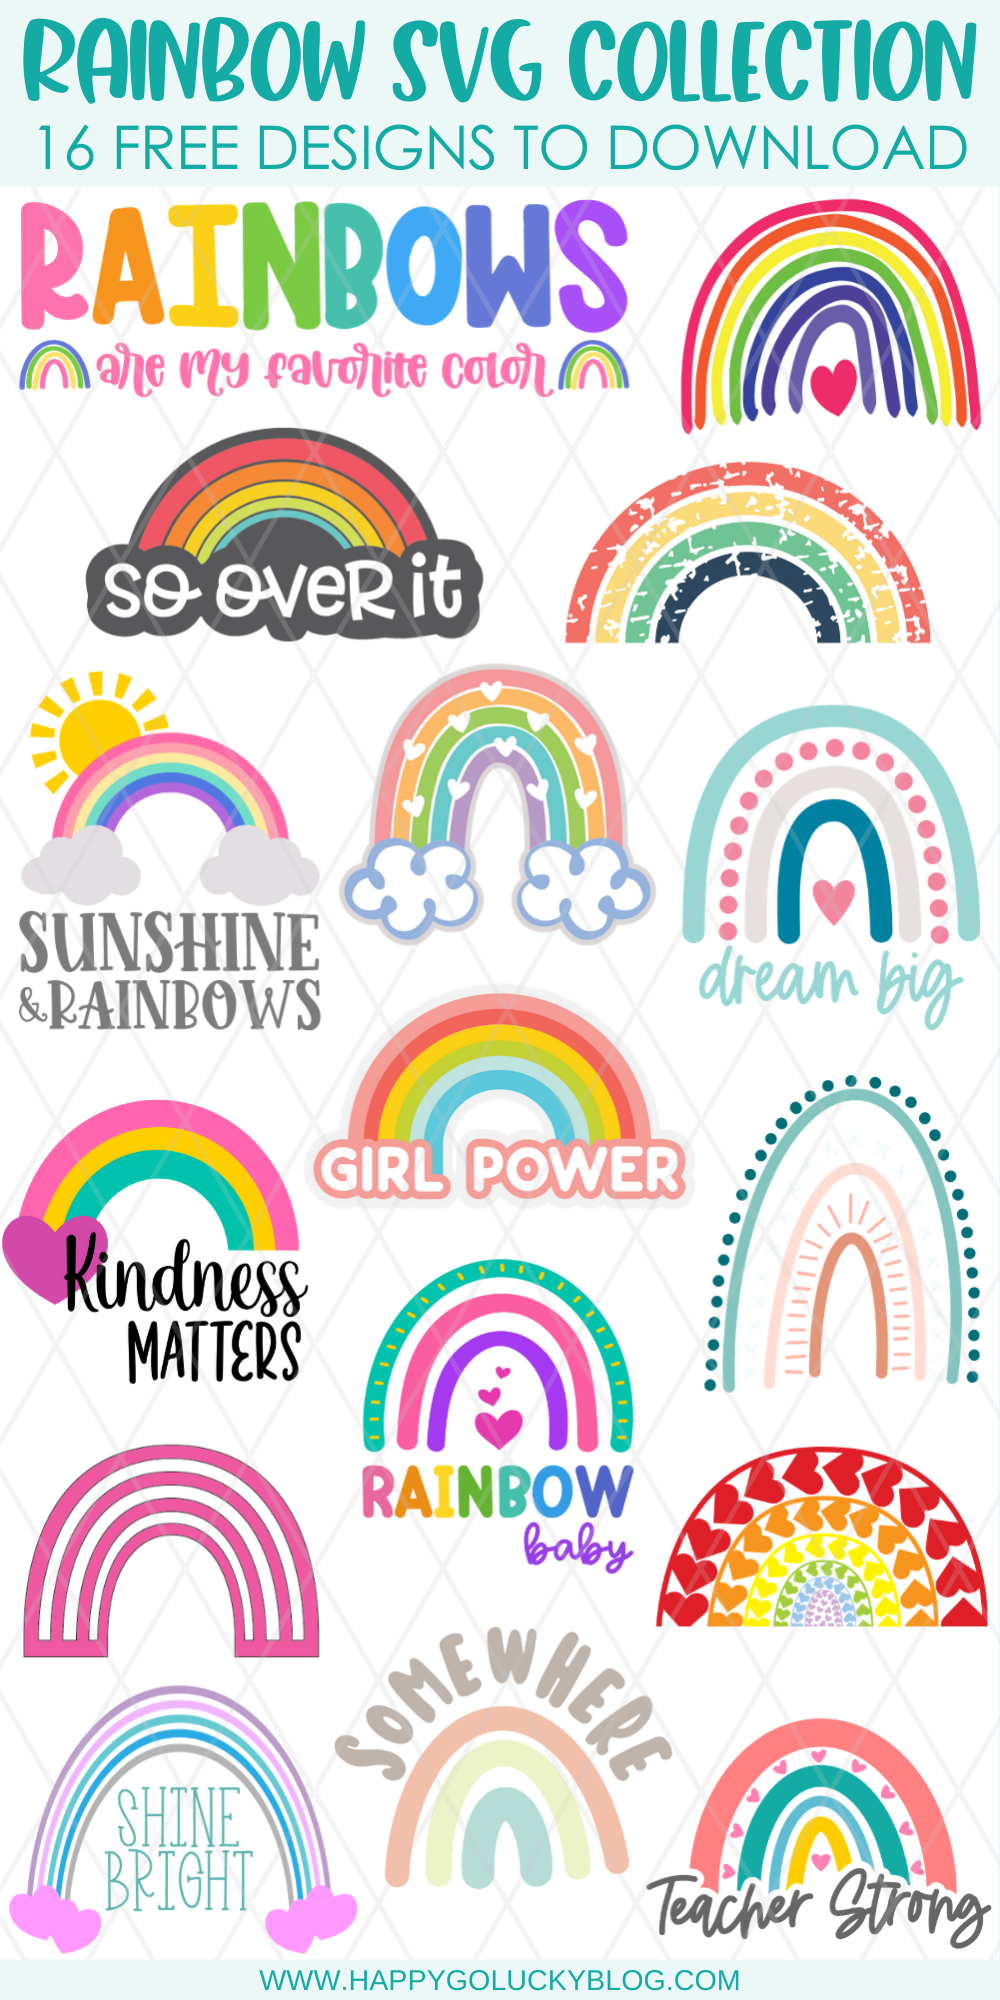 Rainbow SVG Collection 16 Free Designs to Download